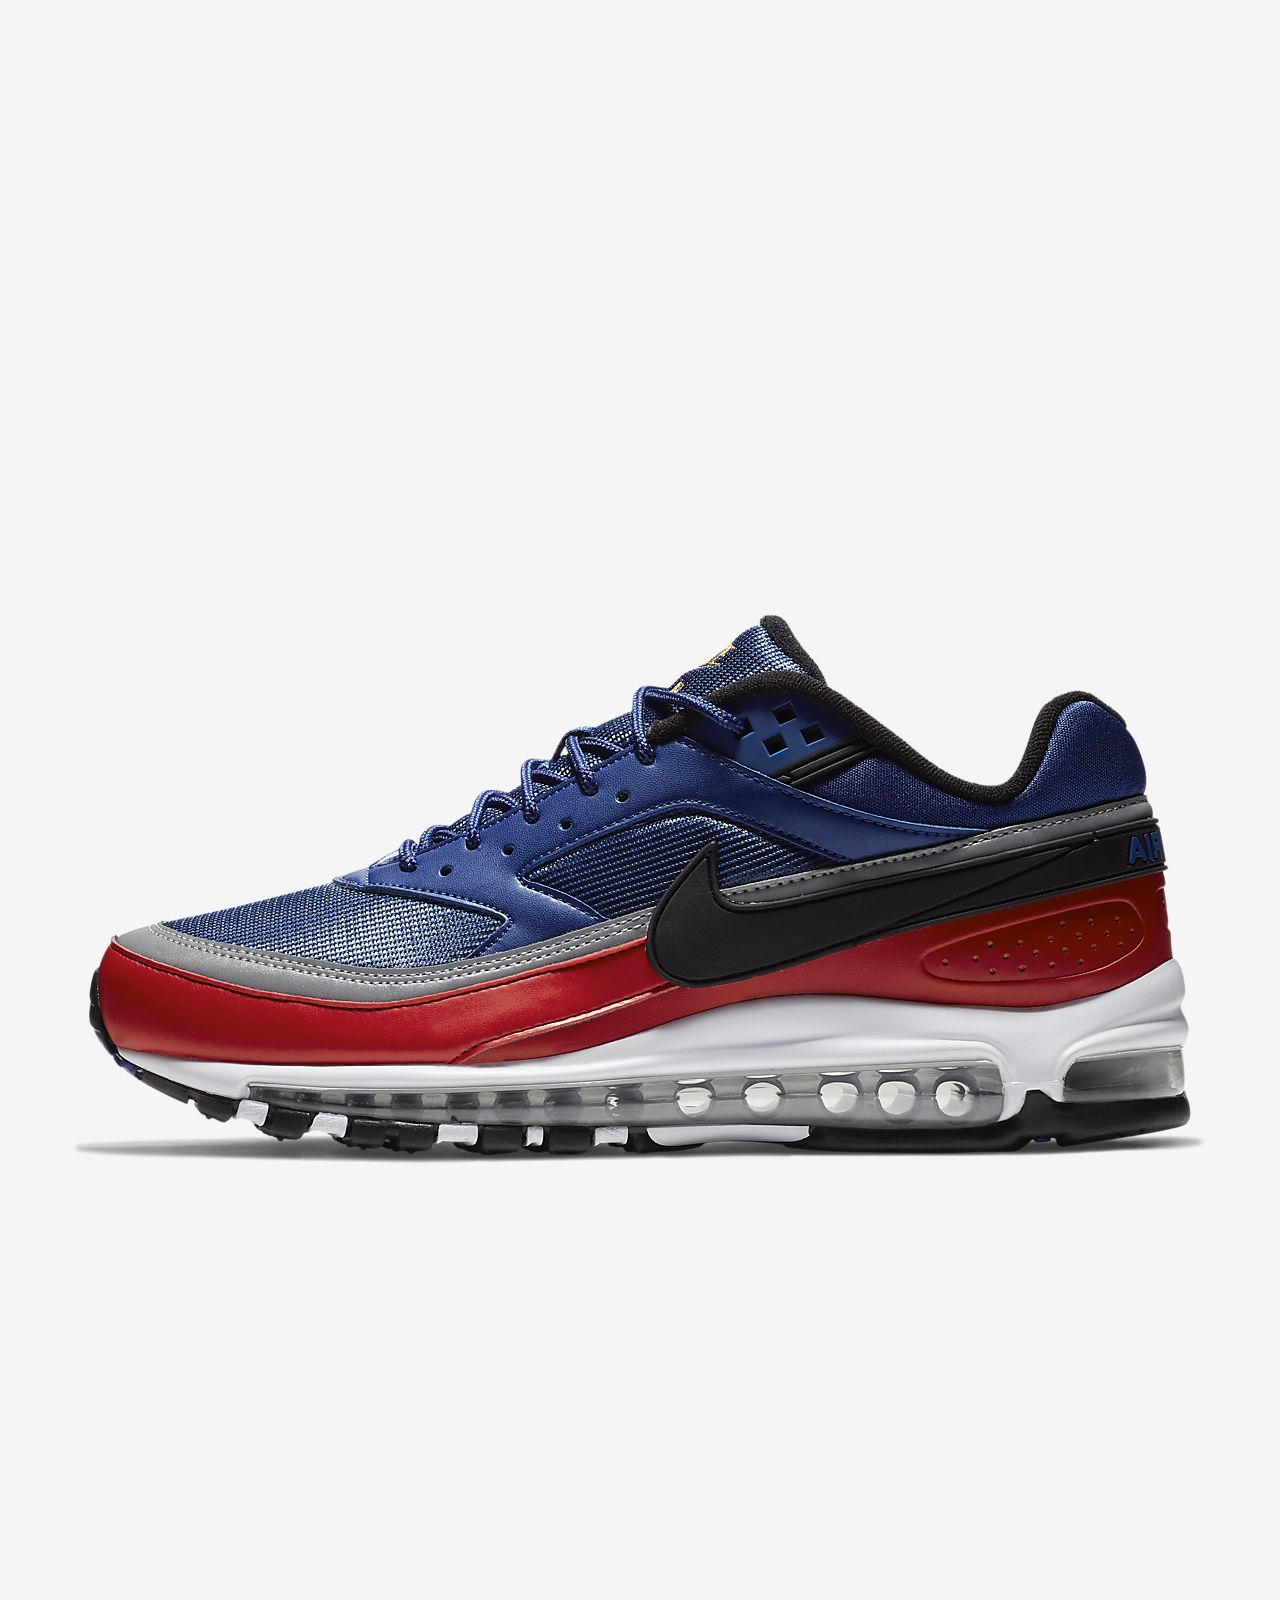 competitive price 4702b 49264 ... Nike Air Max 97 BW Men s Shoe